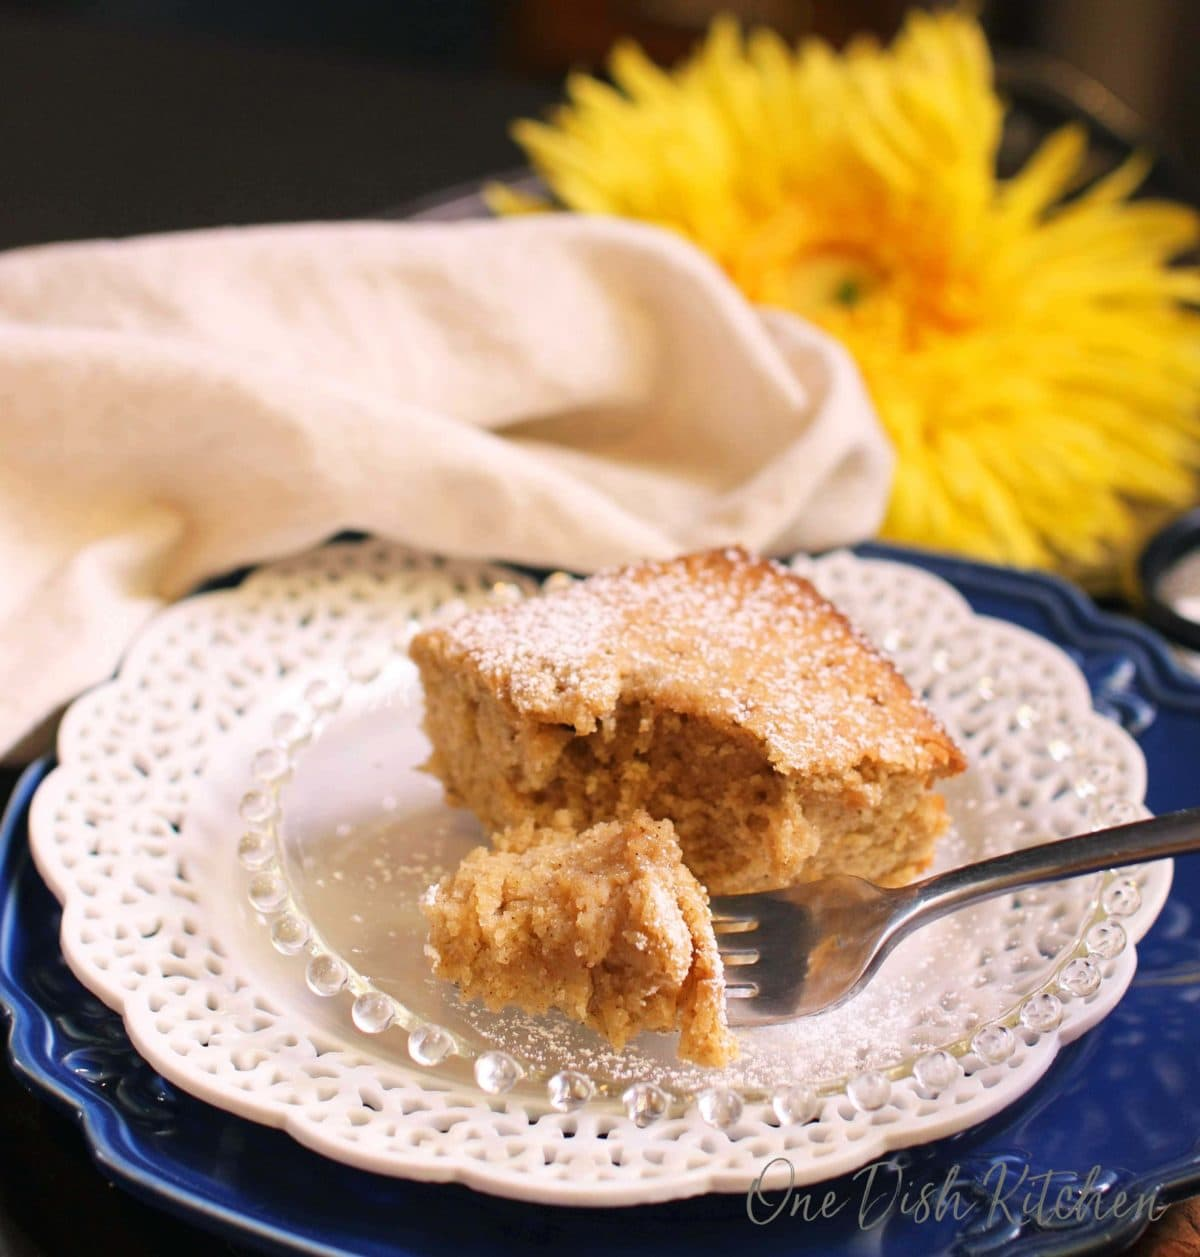 A square piece of spice cake dusted with powdered sugar on a small plate with a fork